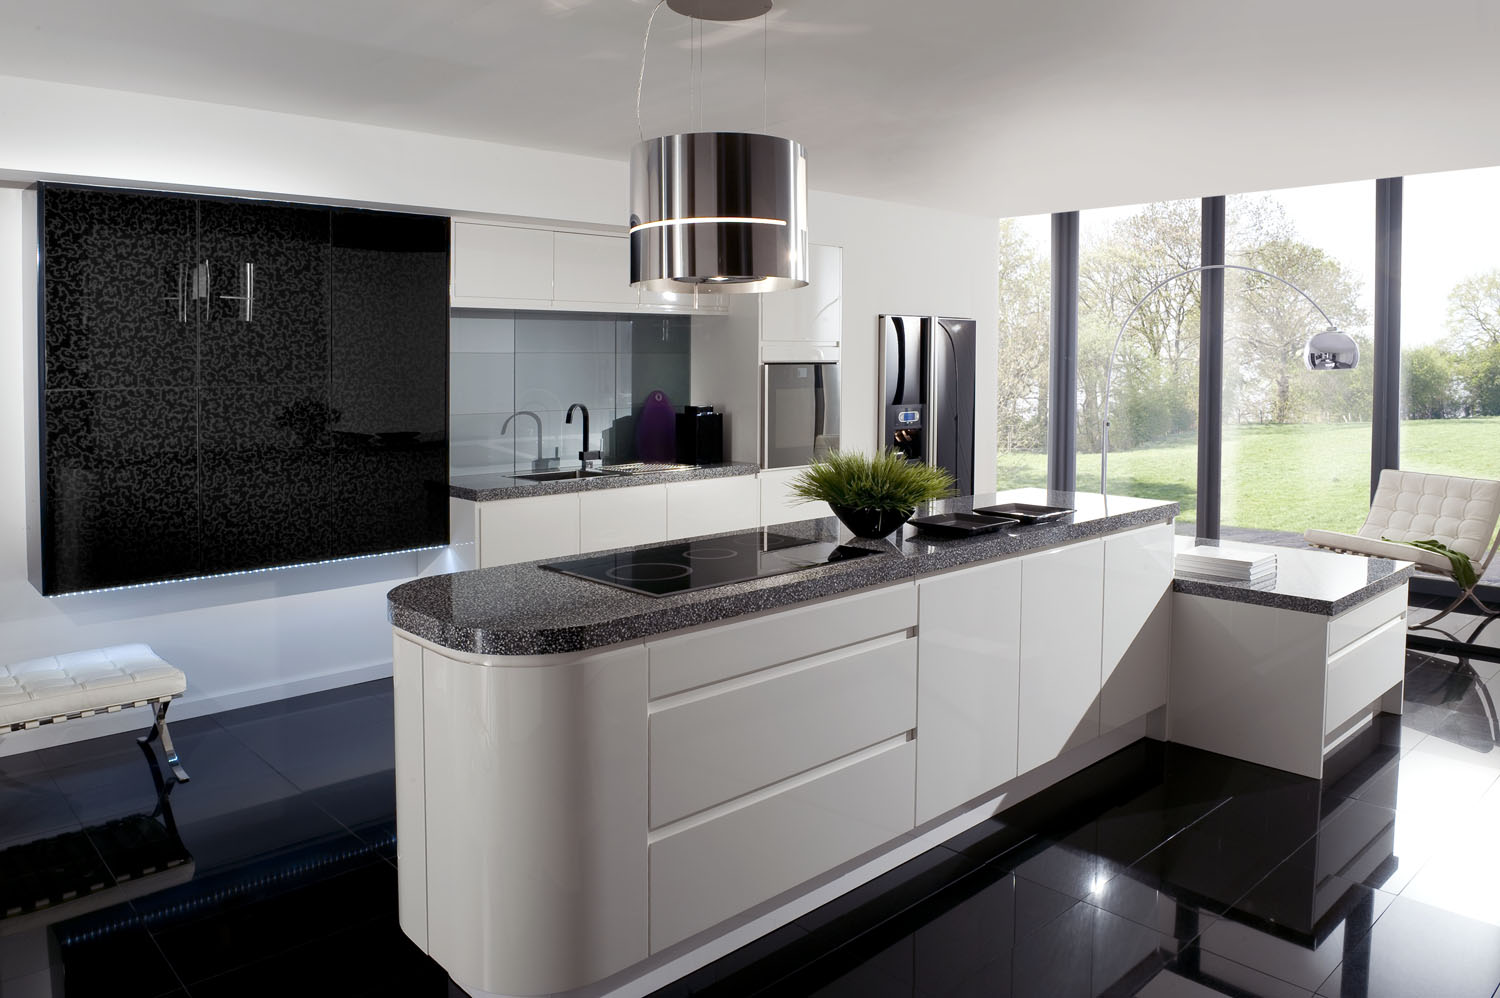 Marble Counter and Gray Kitchen